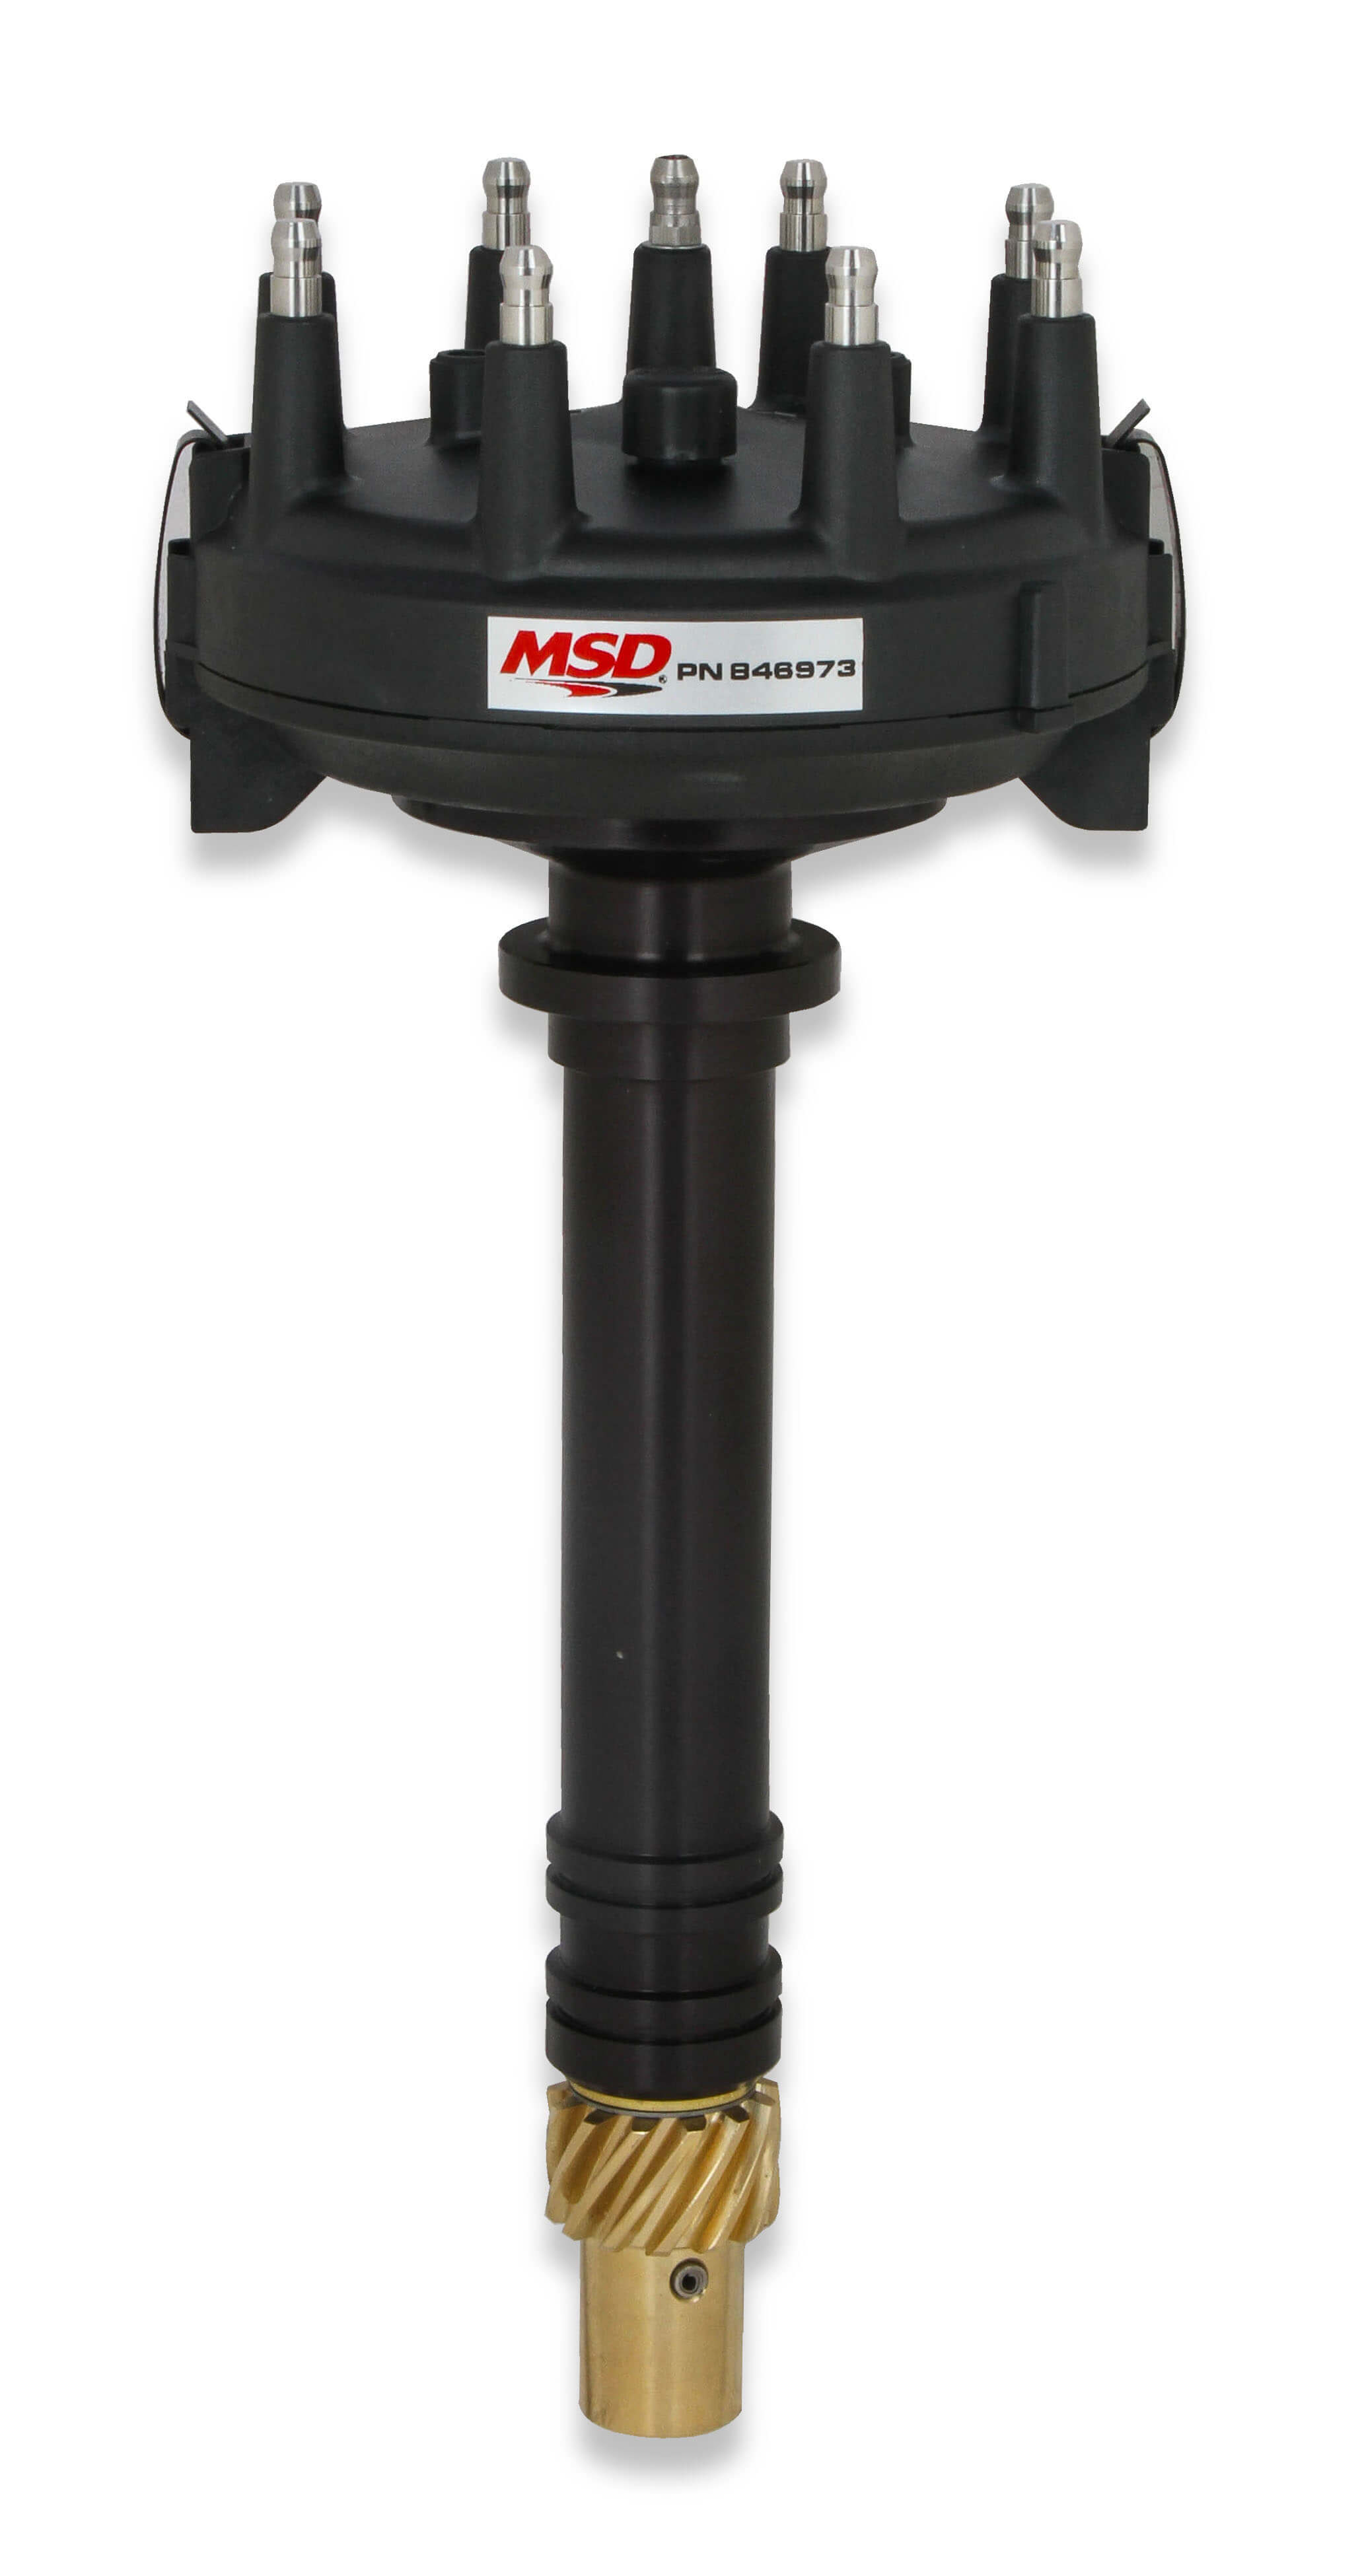 MSD Ignition 846973 Distributor, Pro-Billet, Crank Trigger Pickup, Locked Advance, HEI Style Terminal, Low Profile, Black, Chevy V8, Each